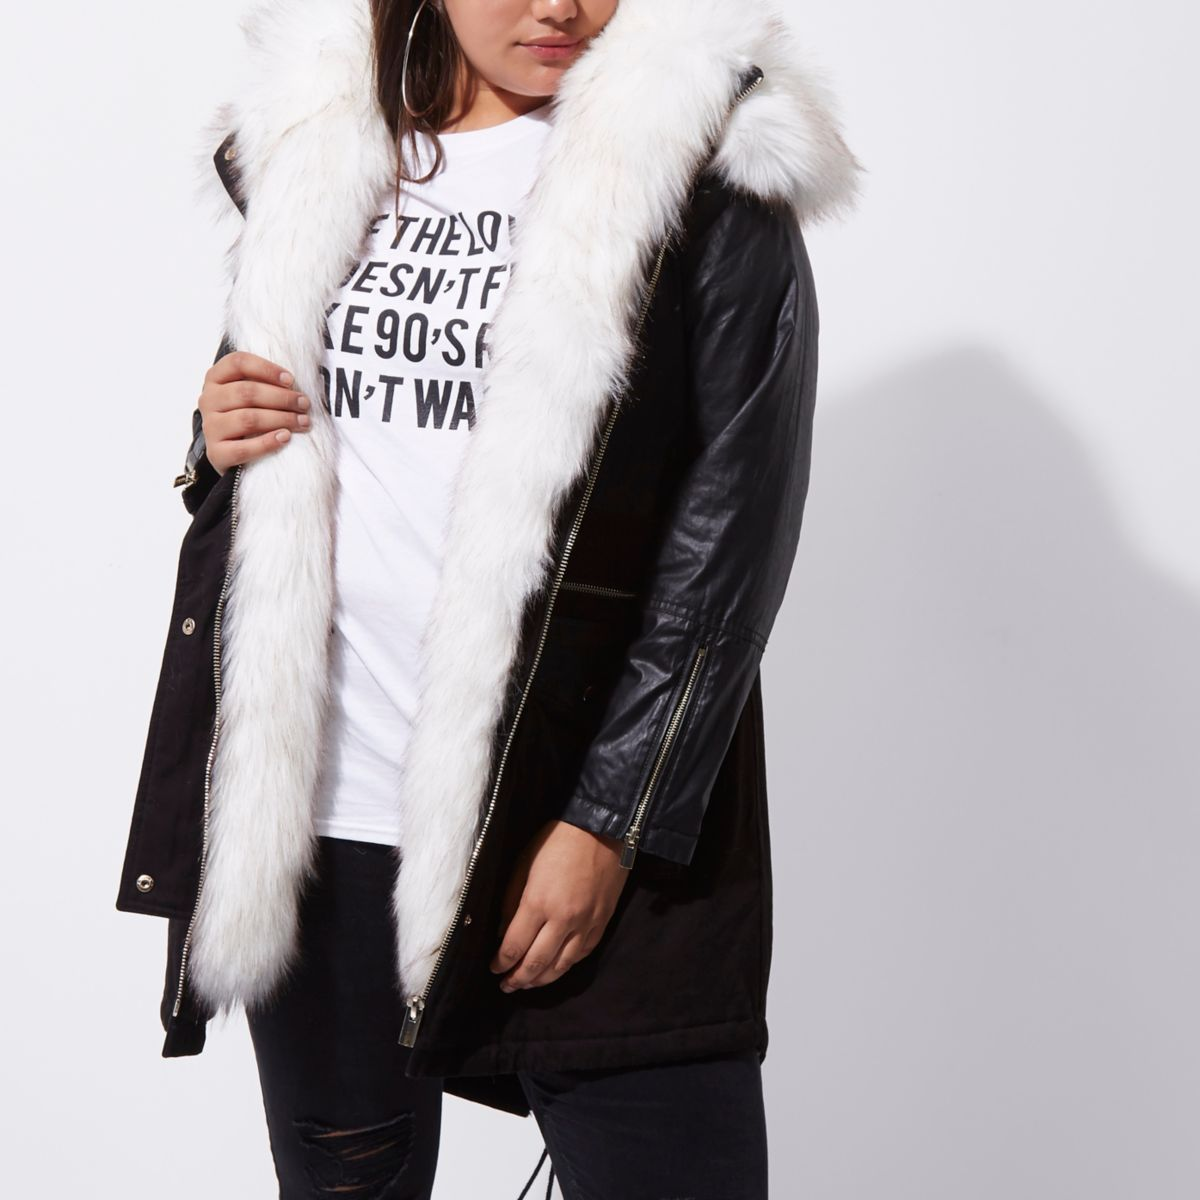 Black Jacket With White Fur | Jackets Review